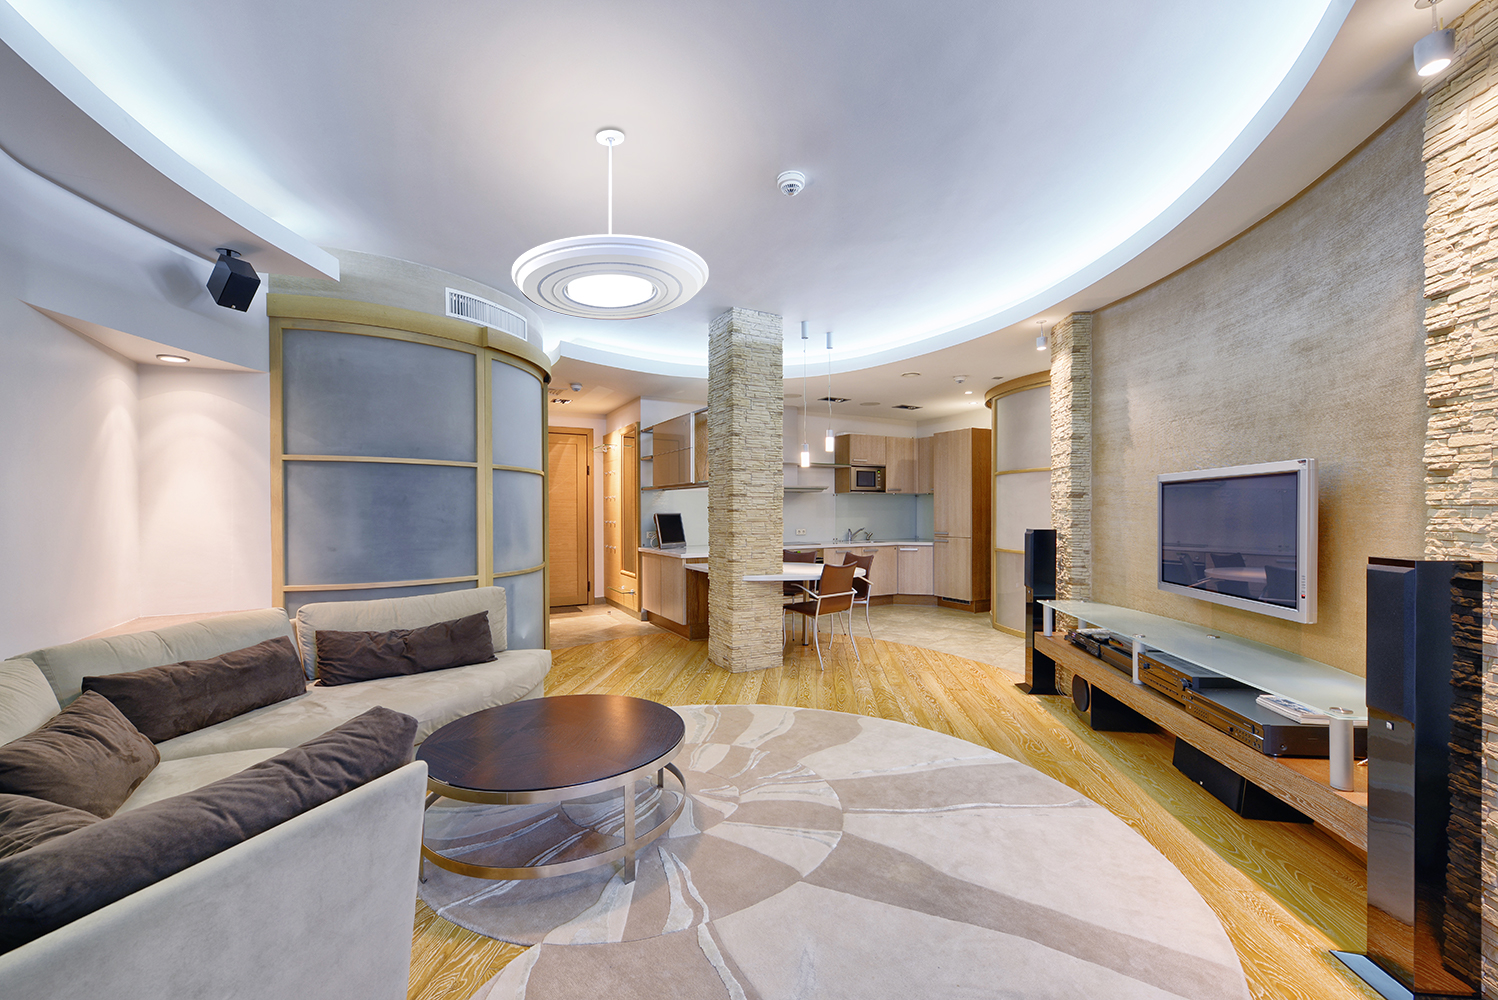 Gemini pendant in an apartment lighting application above a large, circular living room with stone walls